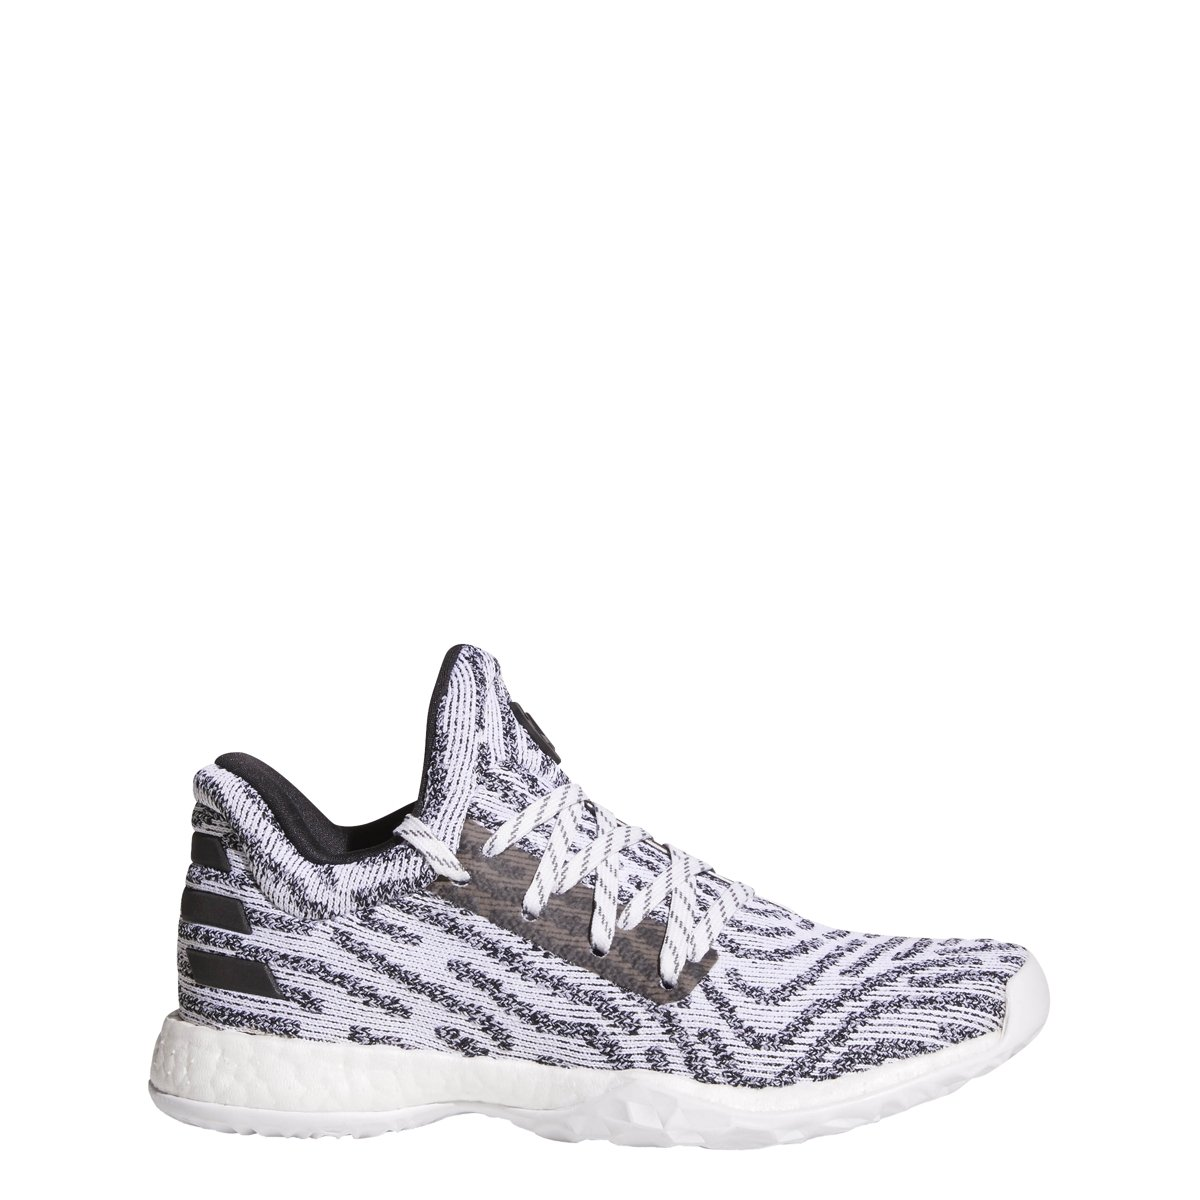 adidas Harden Vol. 1 LS Primeknit Shoe Juniors Basketball 4.5 White-Core Black-Grey by adidas